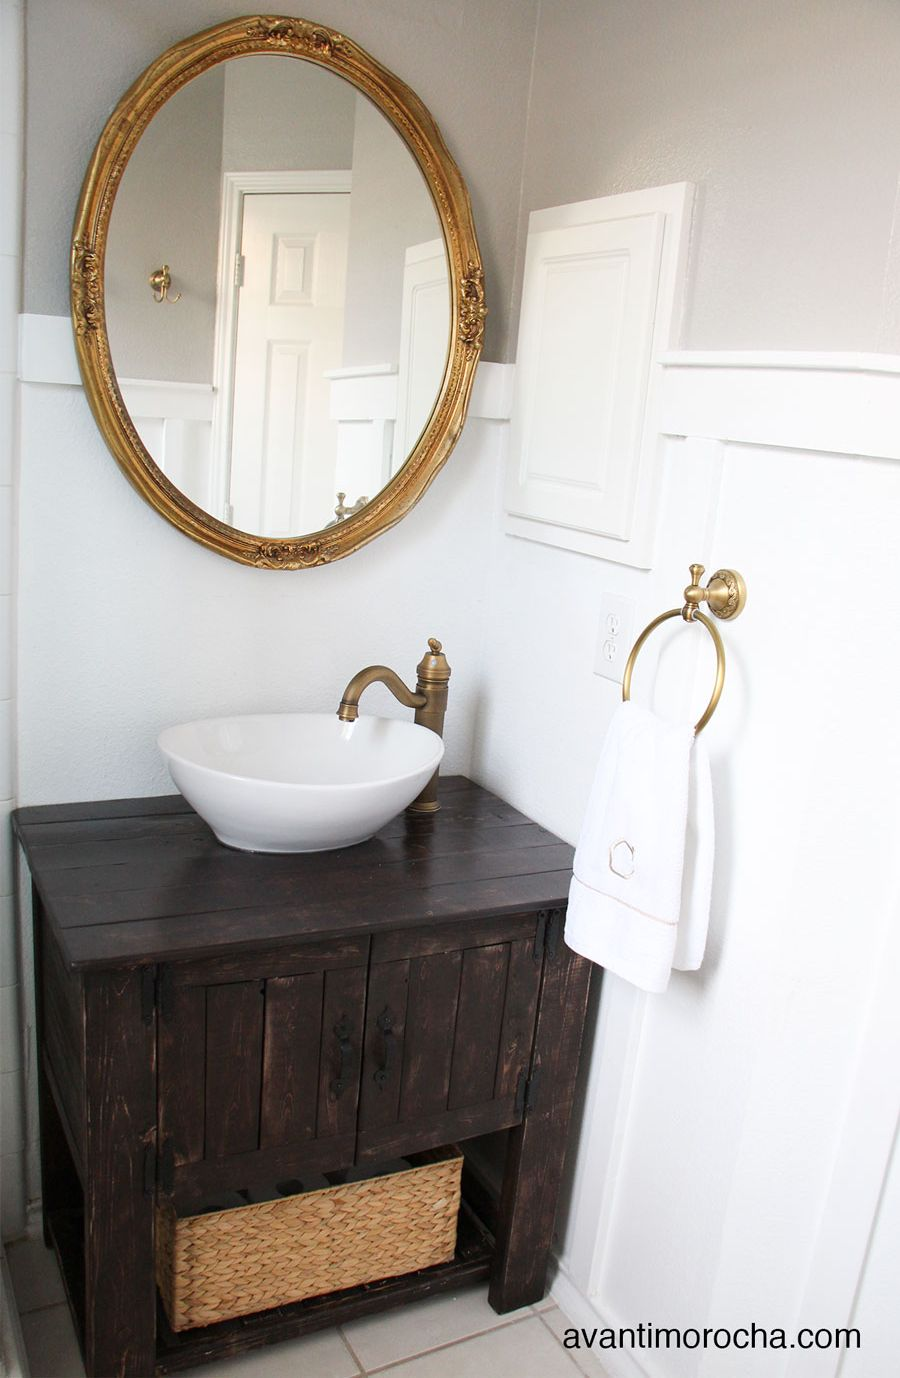 How To Make A Bathroom Vanity Cabinet Diy Bathroom Vanity Ideas Perfect For Repurposers